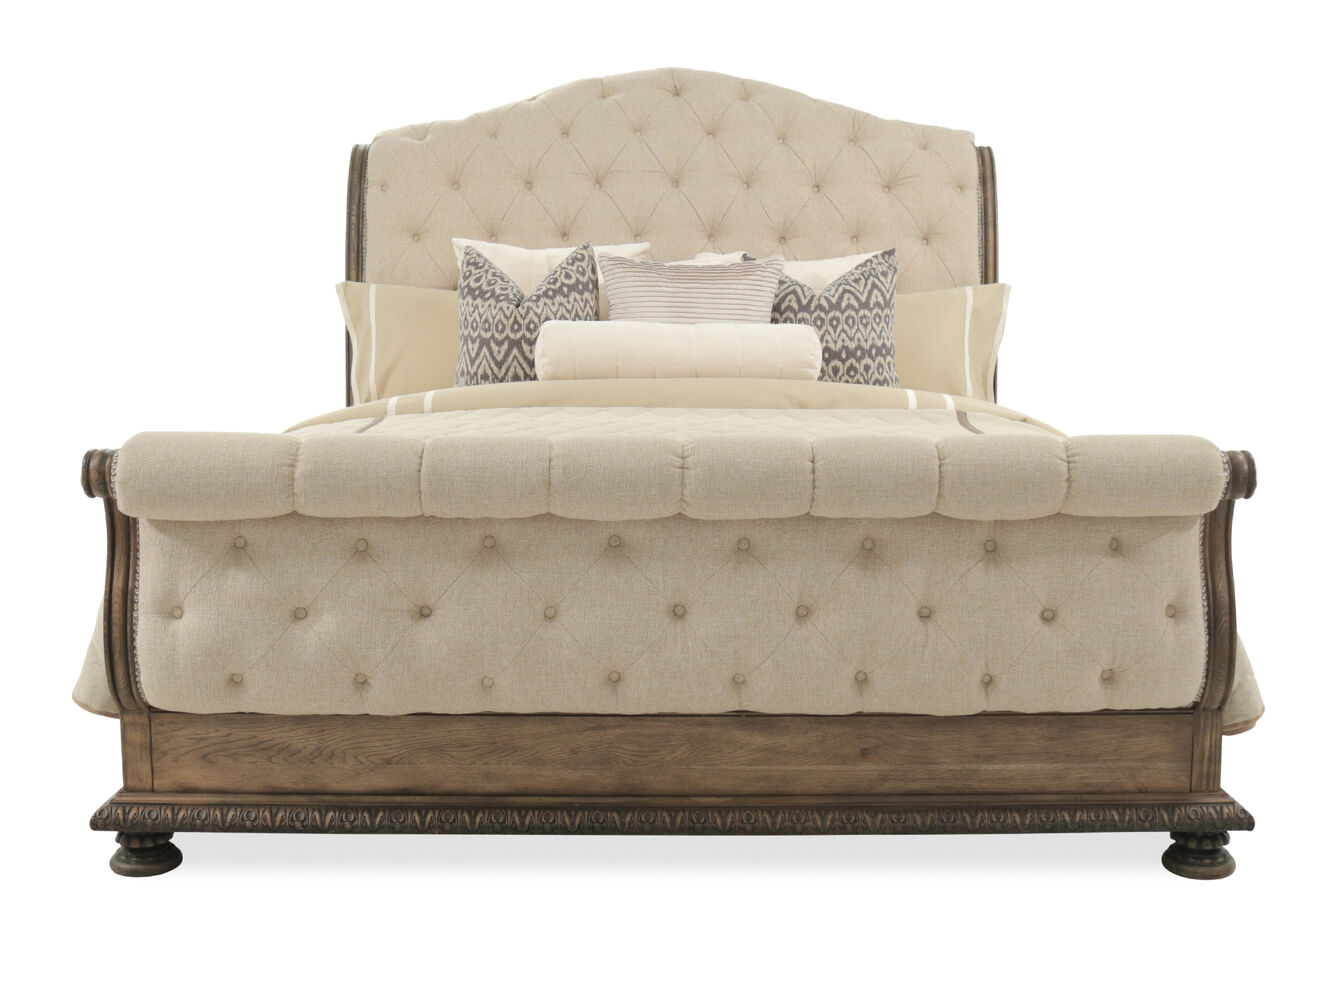 Hooker rhapsody tufted upholstered bed mathis brothers for Bedroom furniture upholstered beds